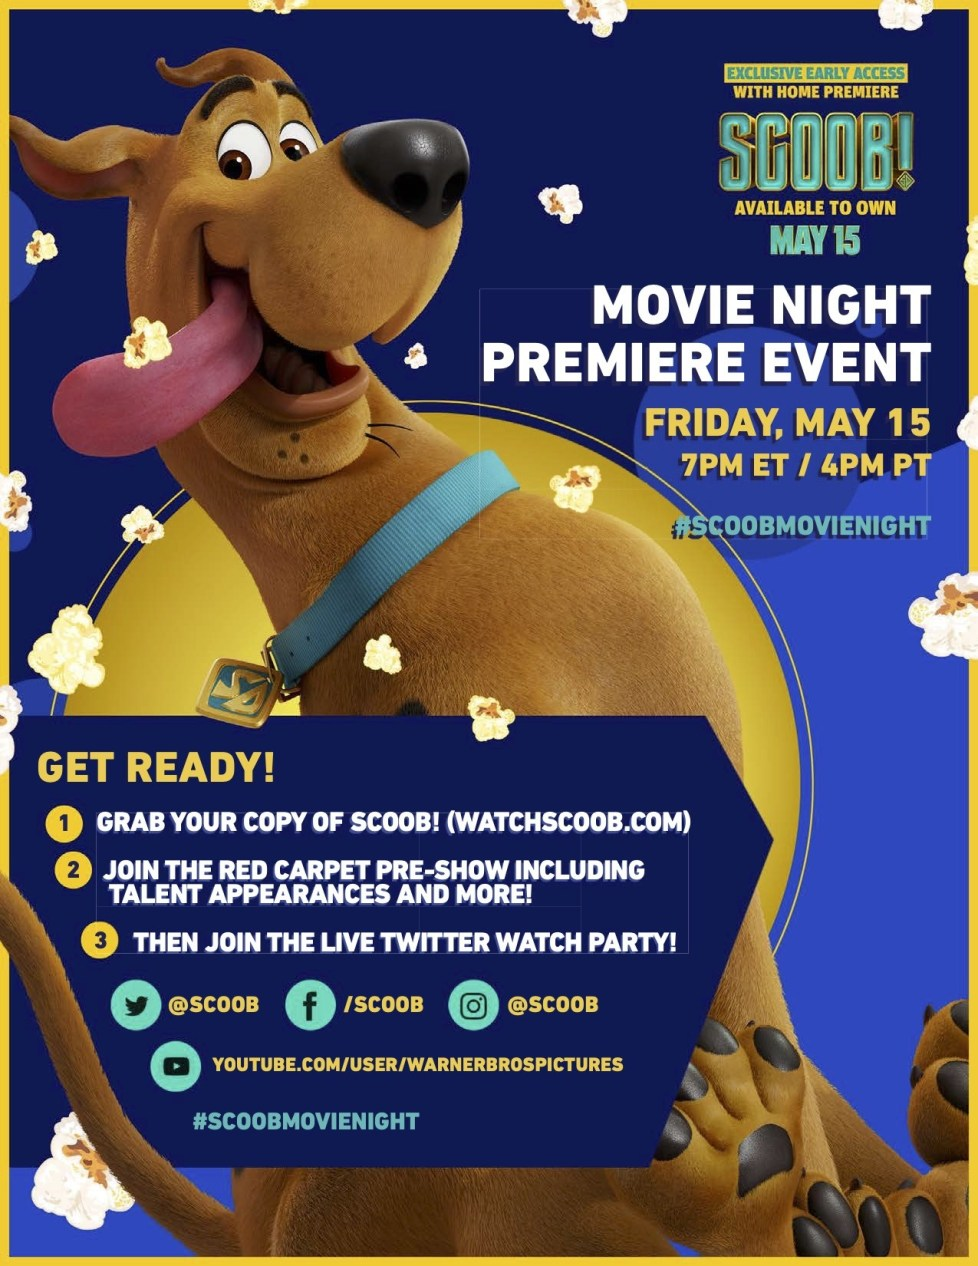 Dellah S Jubilation Looks Like We Ve Got A New Movie On Our Hands Get Ready For The Scoob Movie Night Premiere With Fun Printable Activities